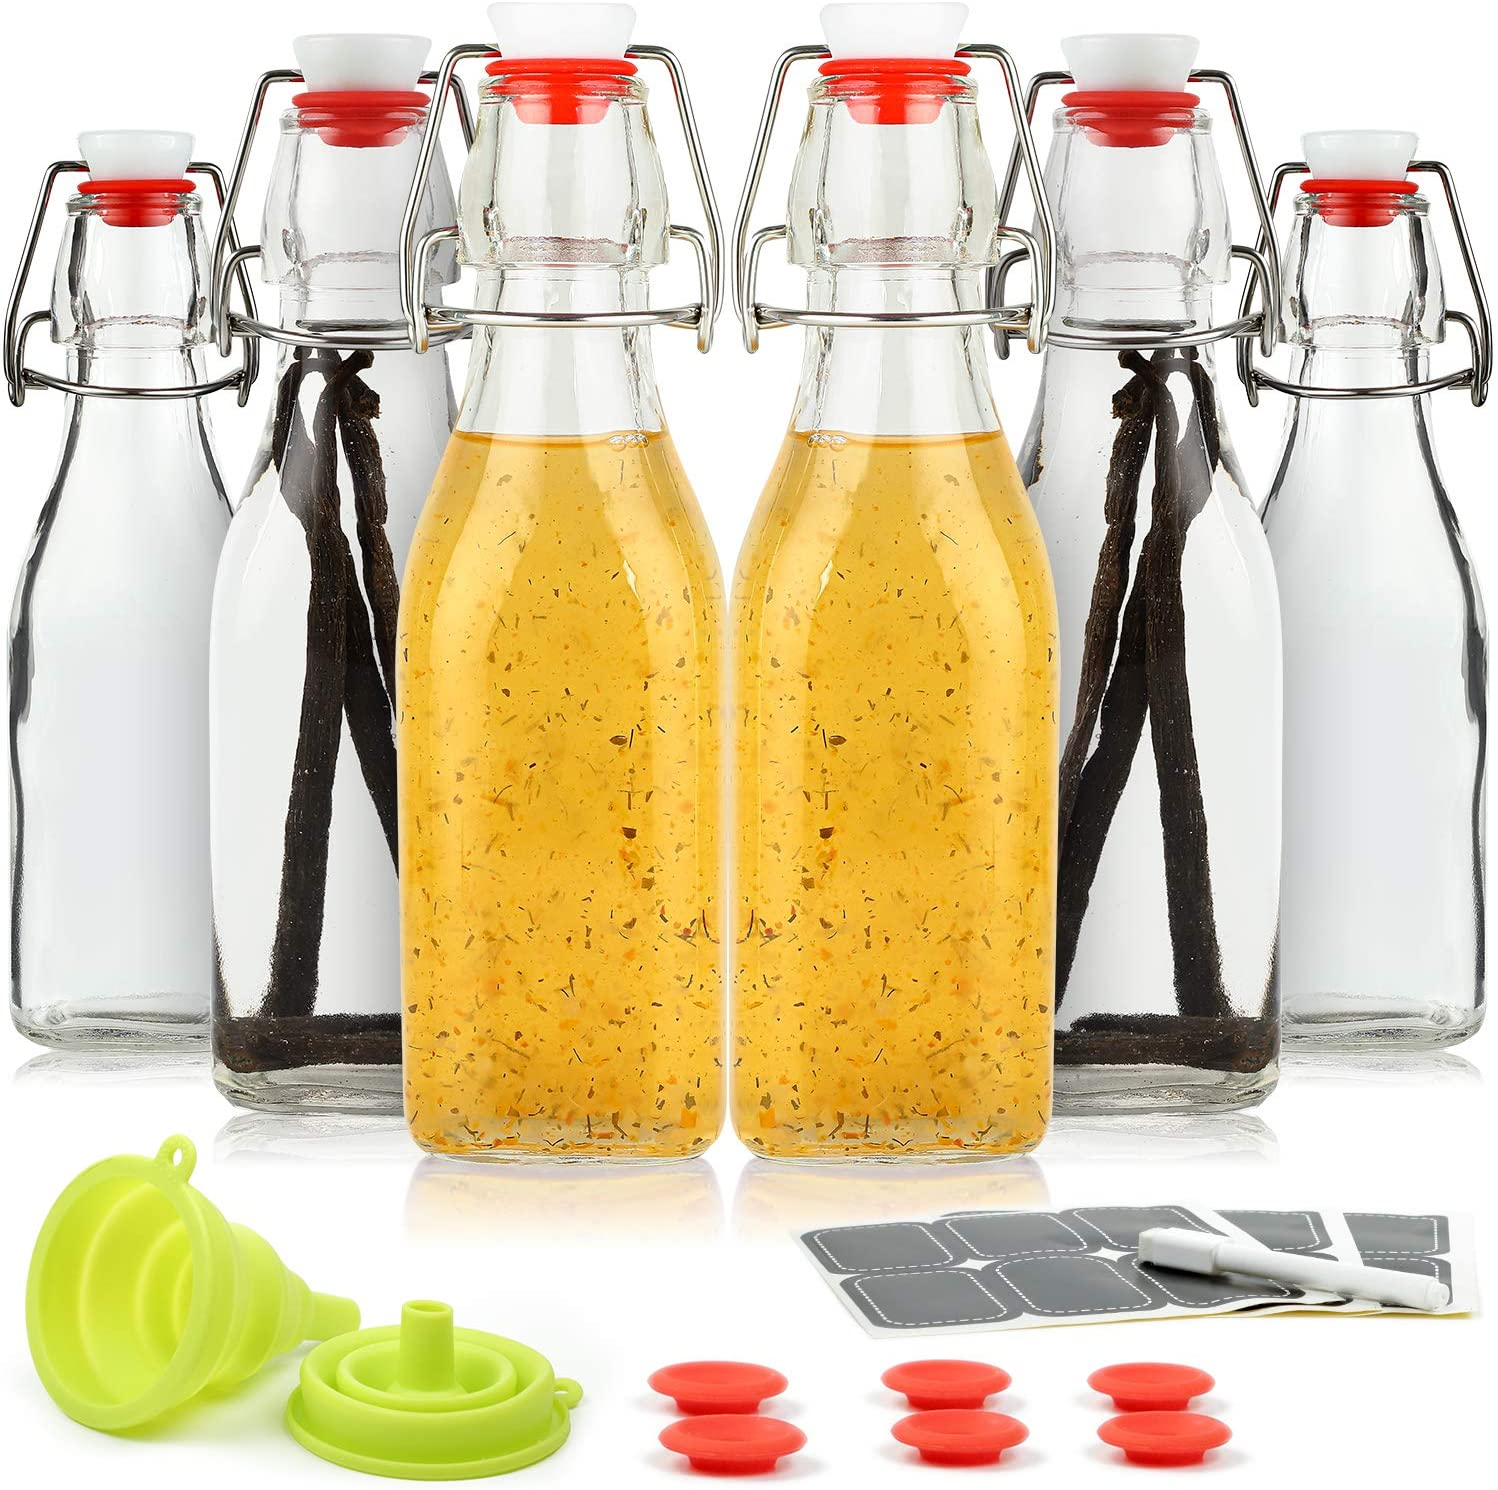 WILLDAN Set of 6-8.5oz Swing Top Glass Bottles - Flip Top Brewing Bottles For Kombucha, Kefir, Vanilla Extract, Beer - Airtight Caps and Leak Proof Lids, Bonus Gaskets and Funnel